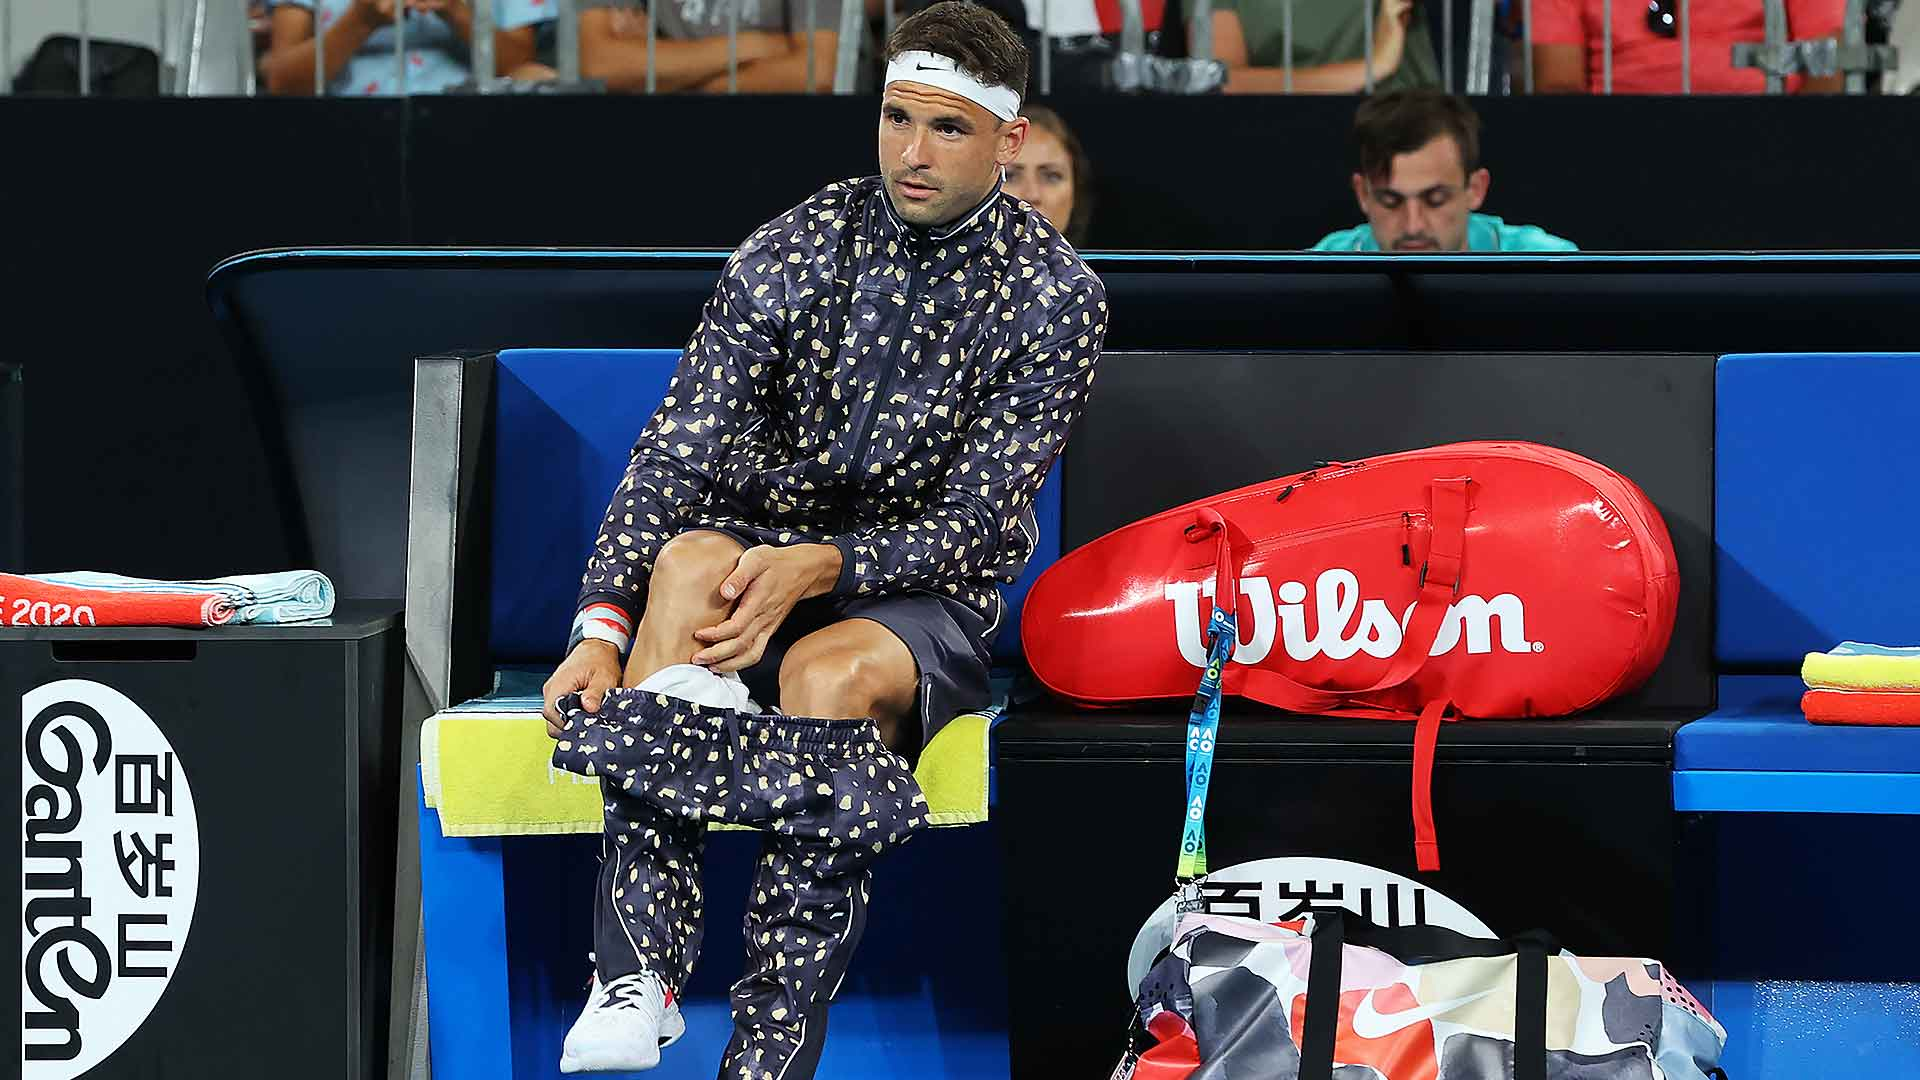 Grigor Dimitrov is happy to be different with his fashion choices.